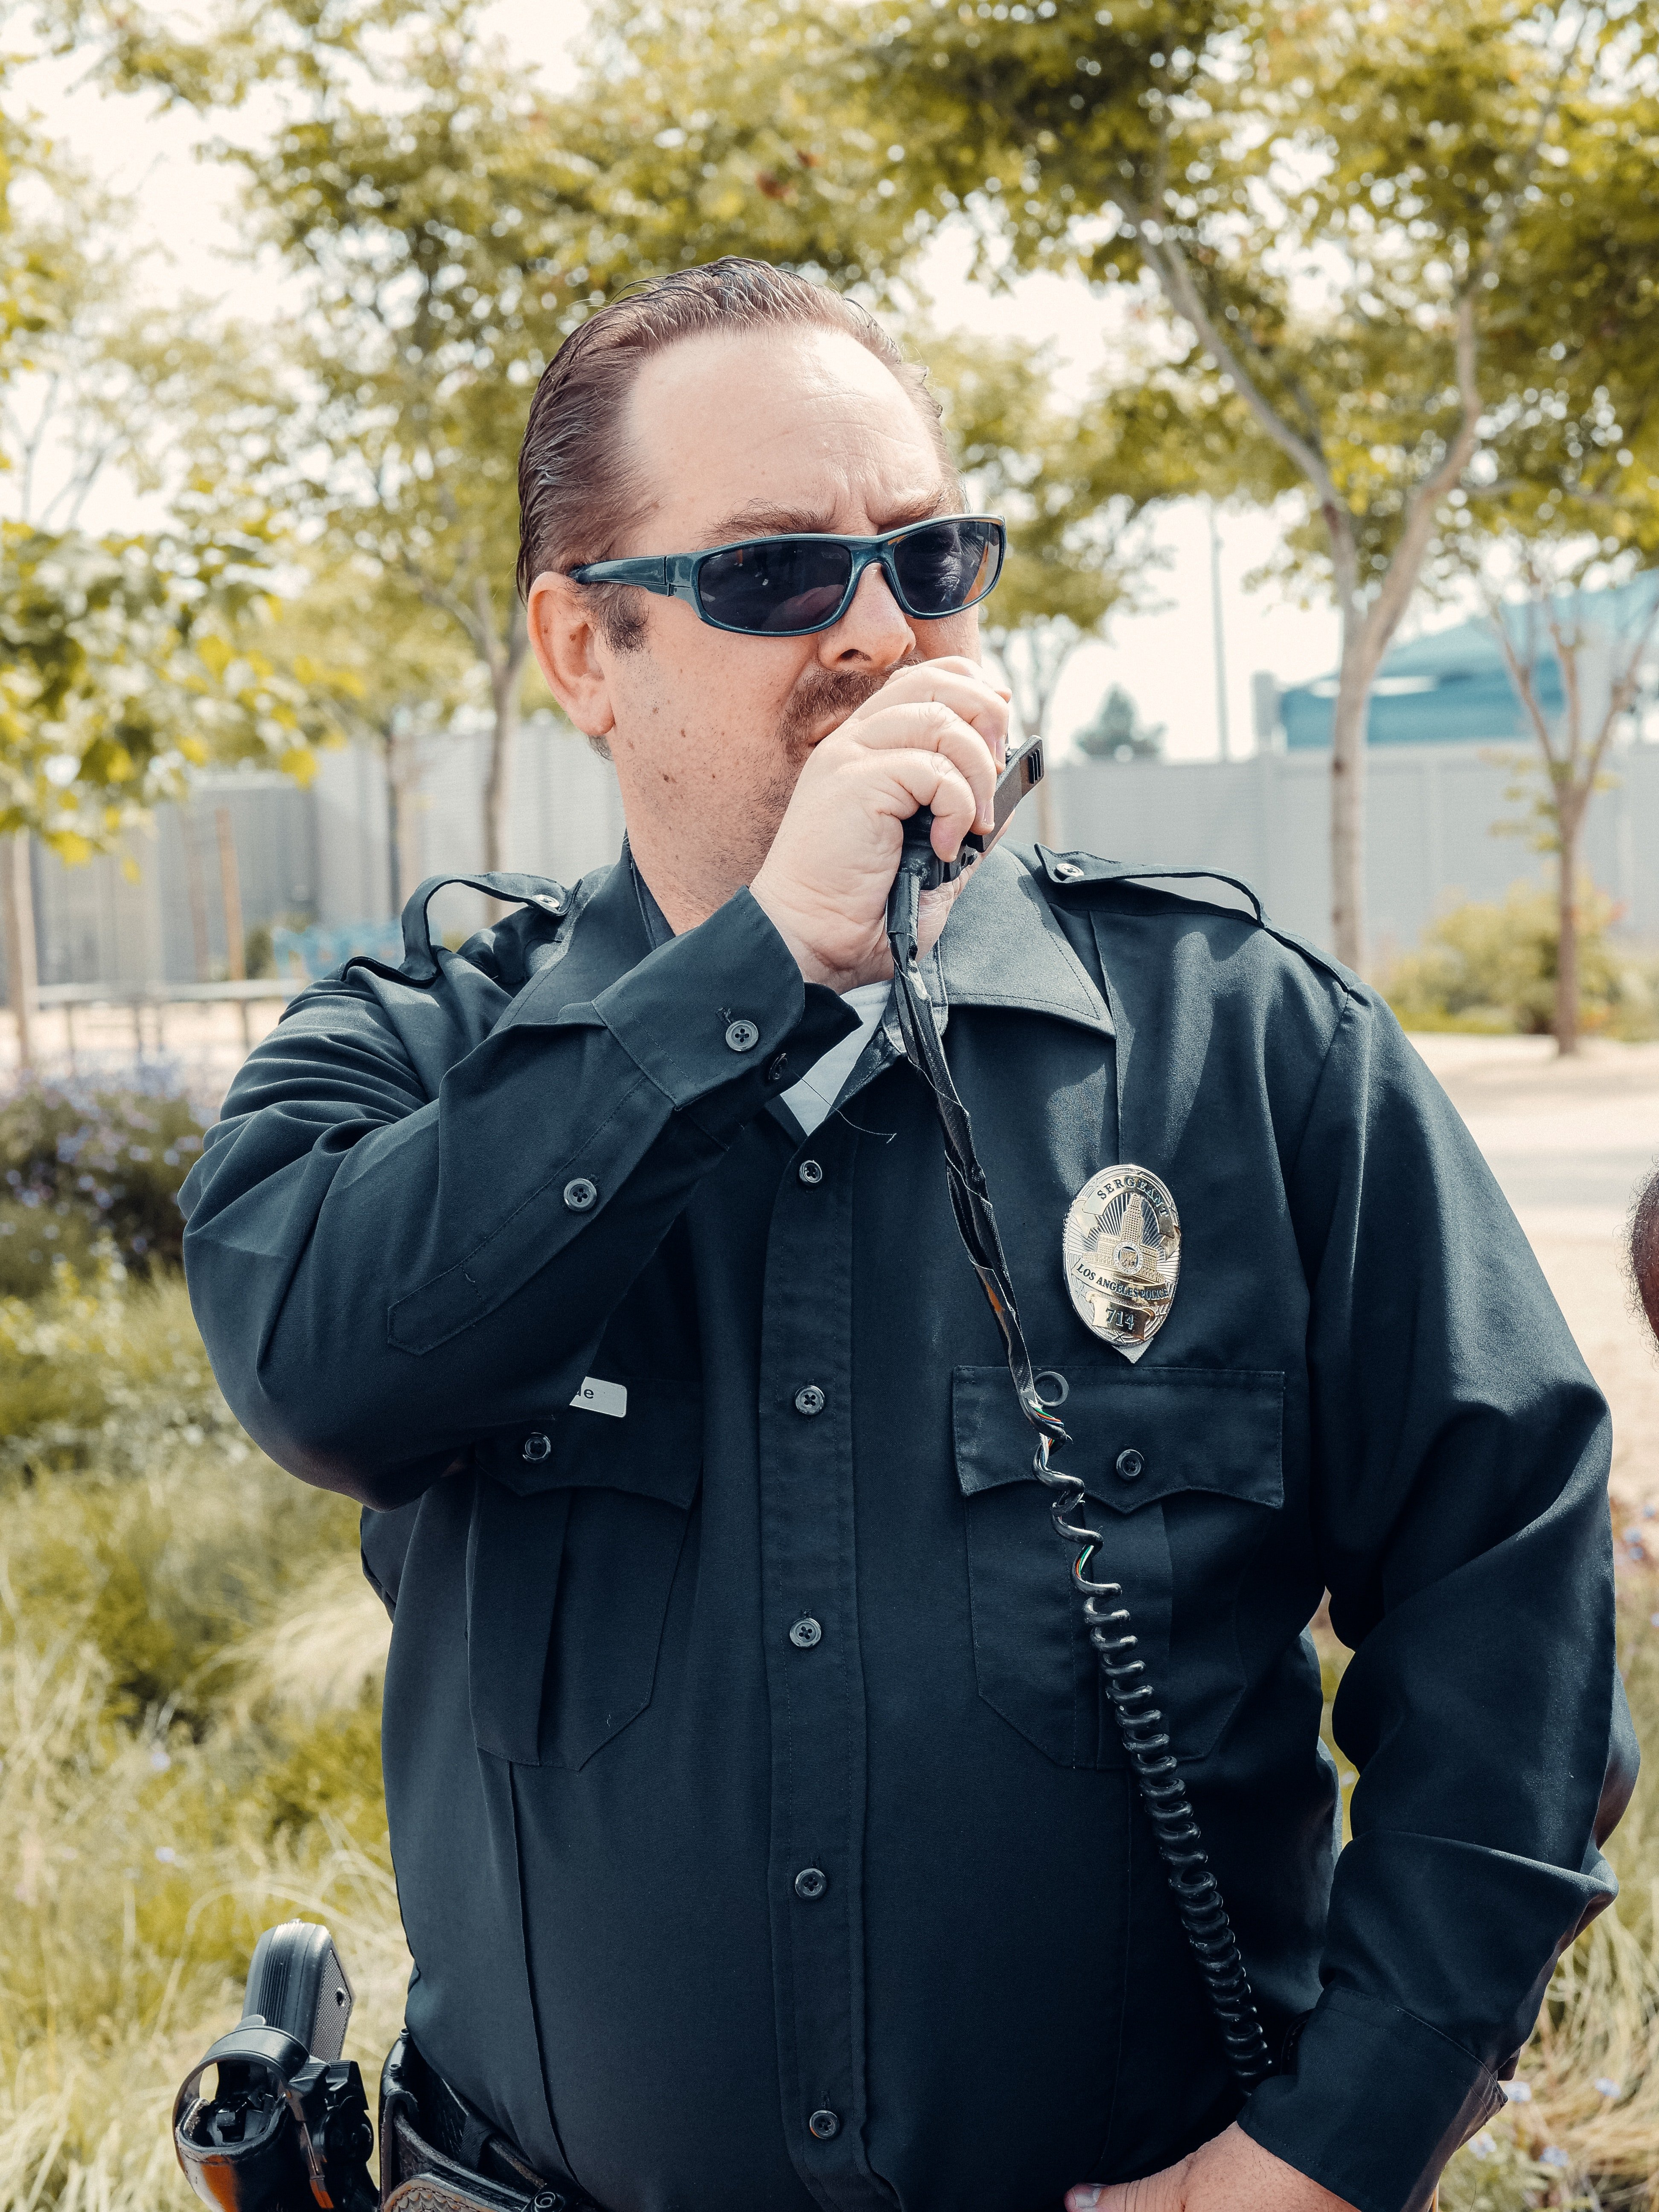 Pictured - A policeman in his uniform wearing sunglasses and speaking on the radio   Source: Pexels